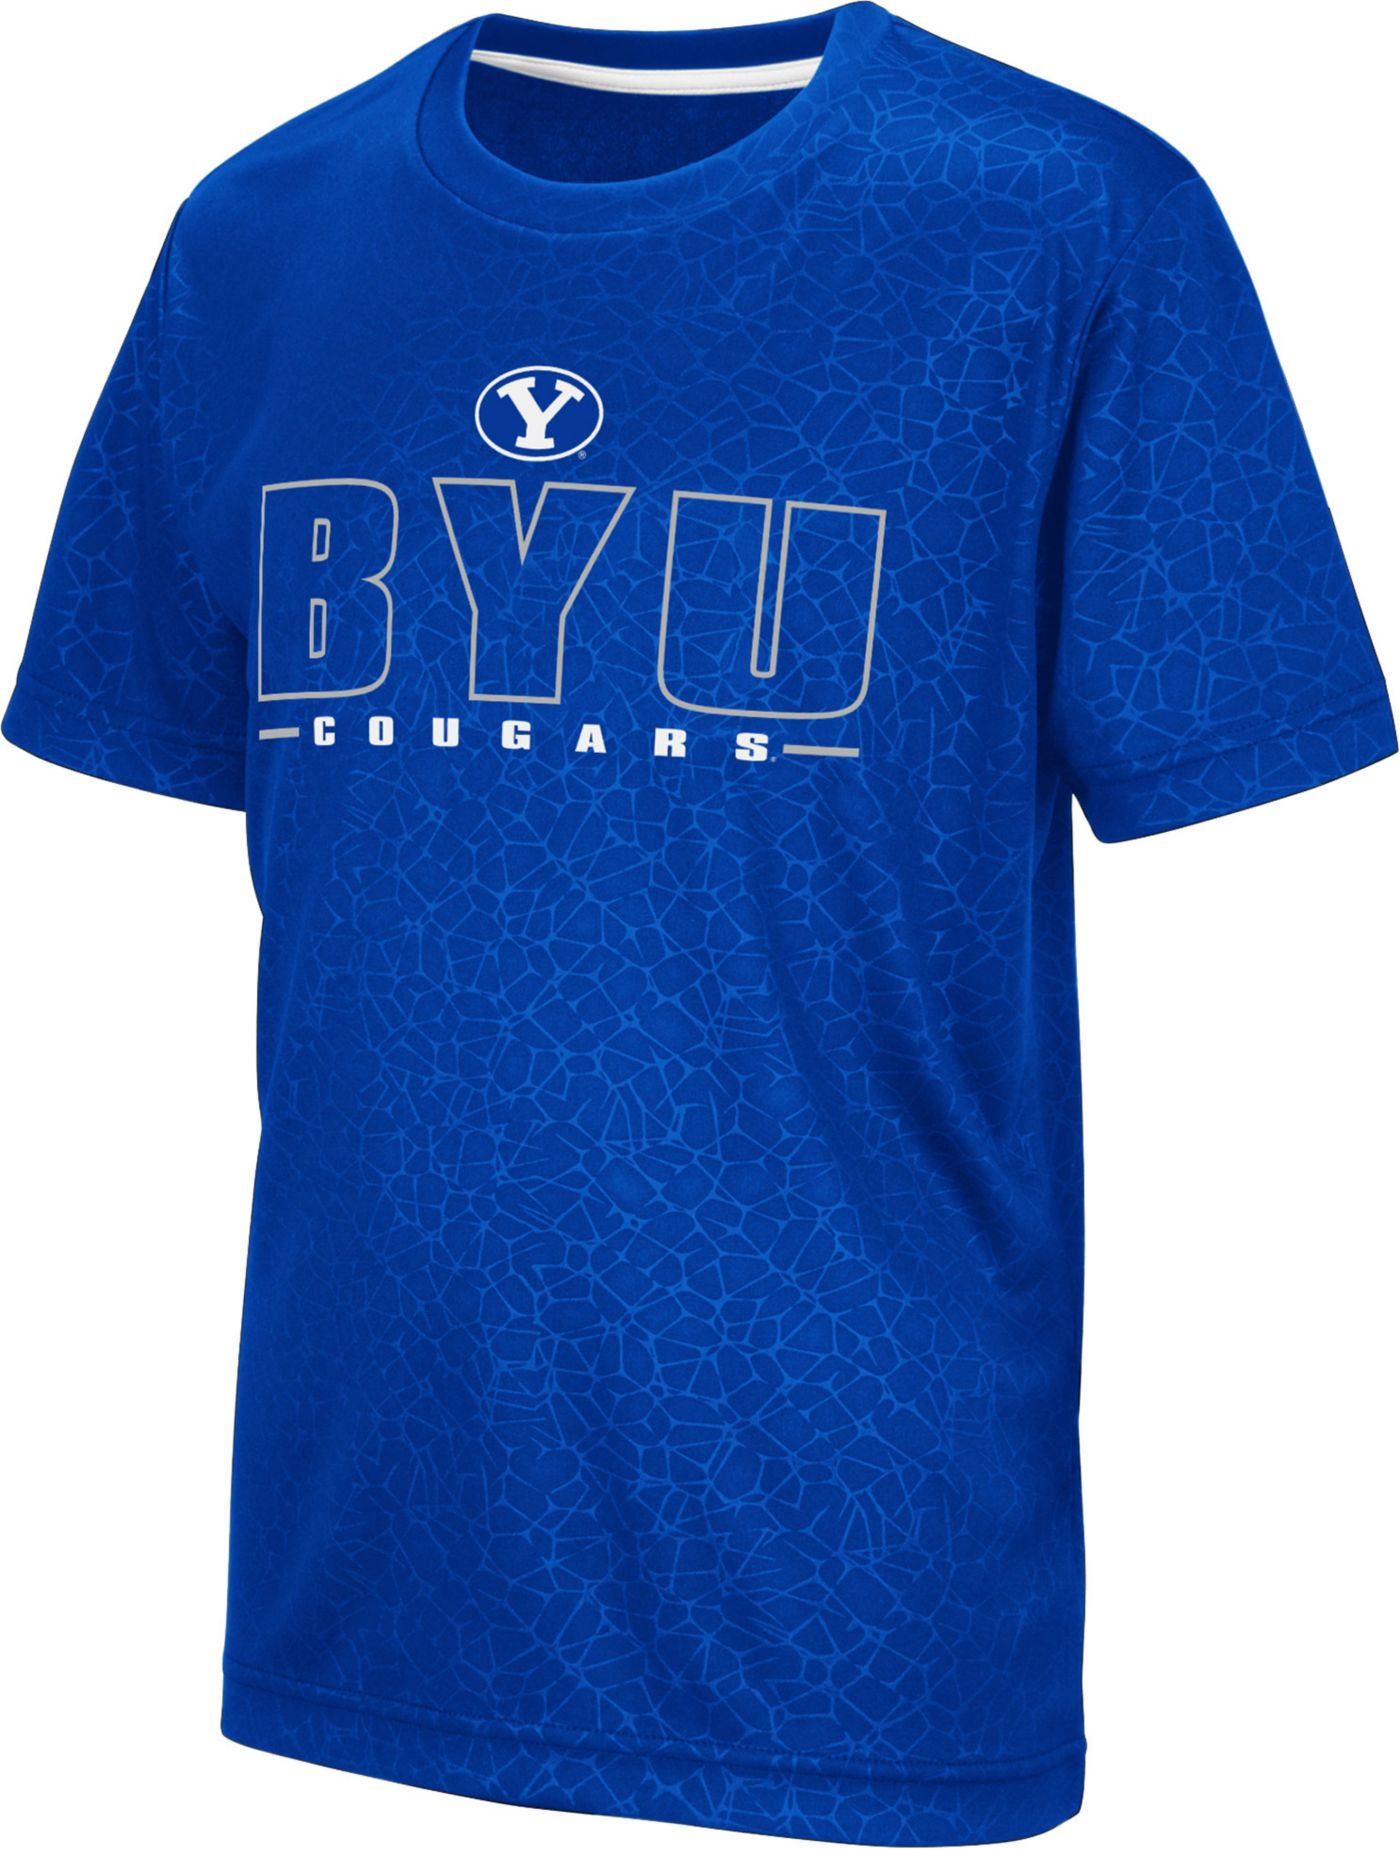 Colosseum Youth BYU Cougars Blue Geoweb T-Shirt